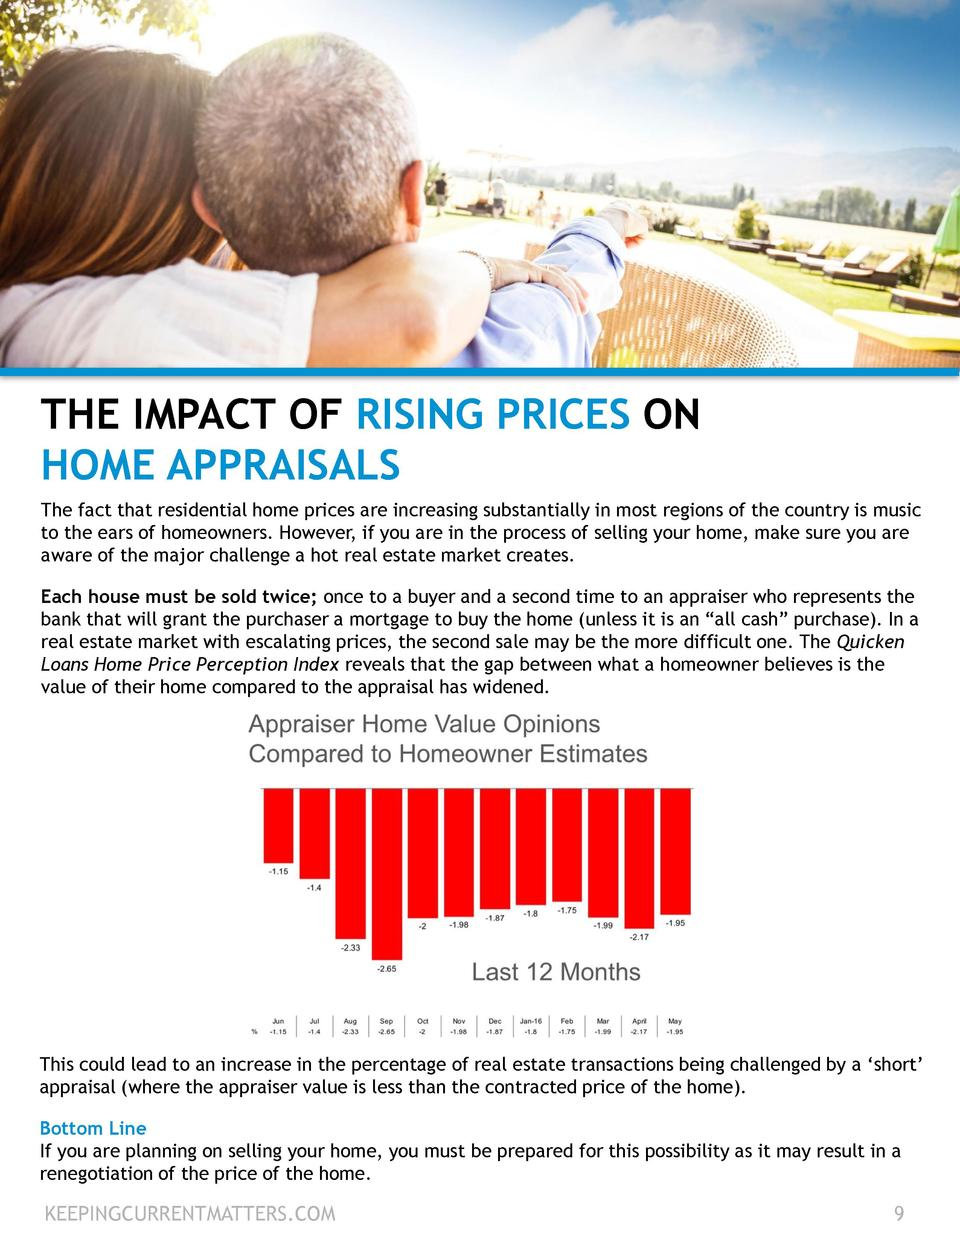 THE IMPACT OF RISING PRICES ON HOME APPRAISALS The fact that residential home prices are increasing substantially in most ...